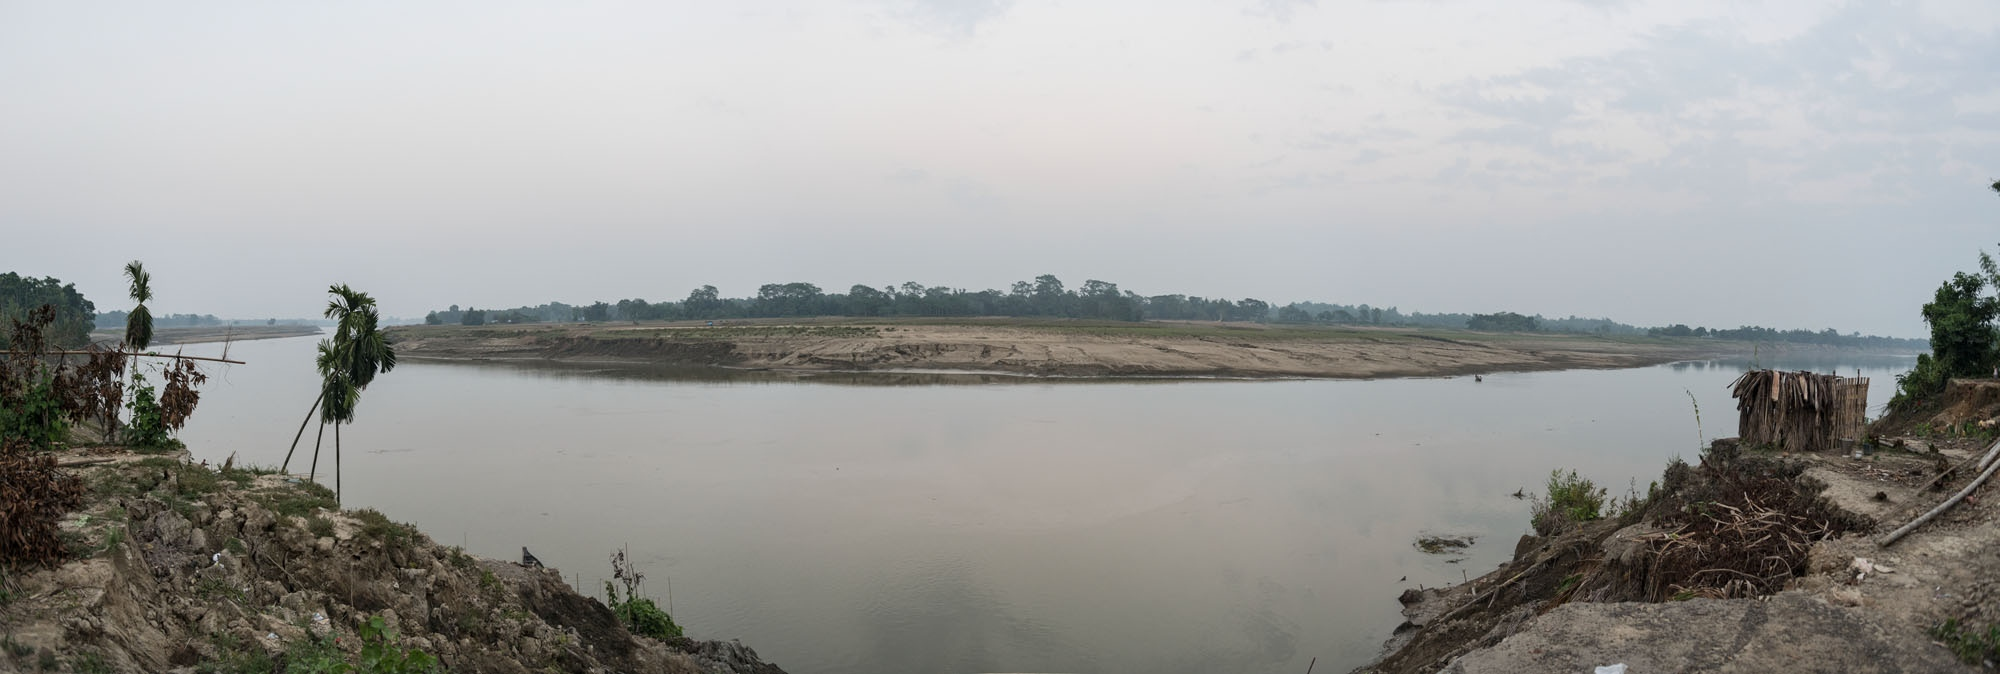 Panorama of Barak river outside of Silchar, Assam.